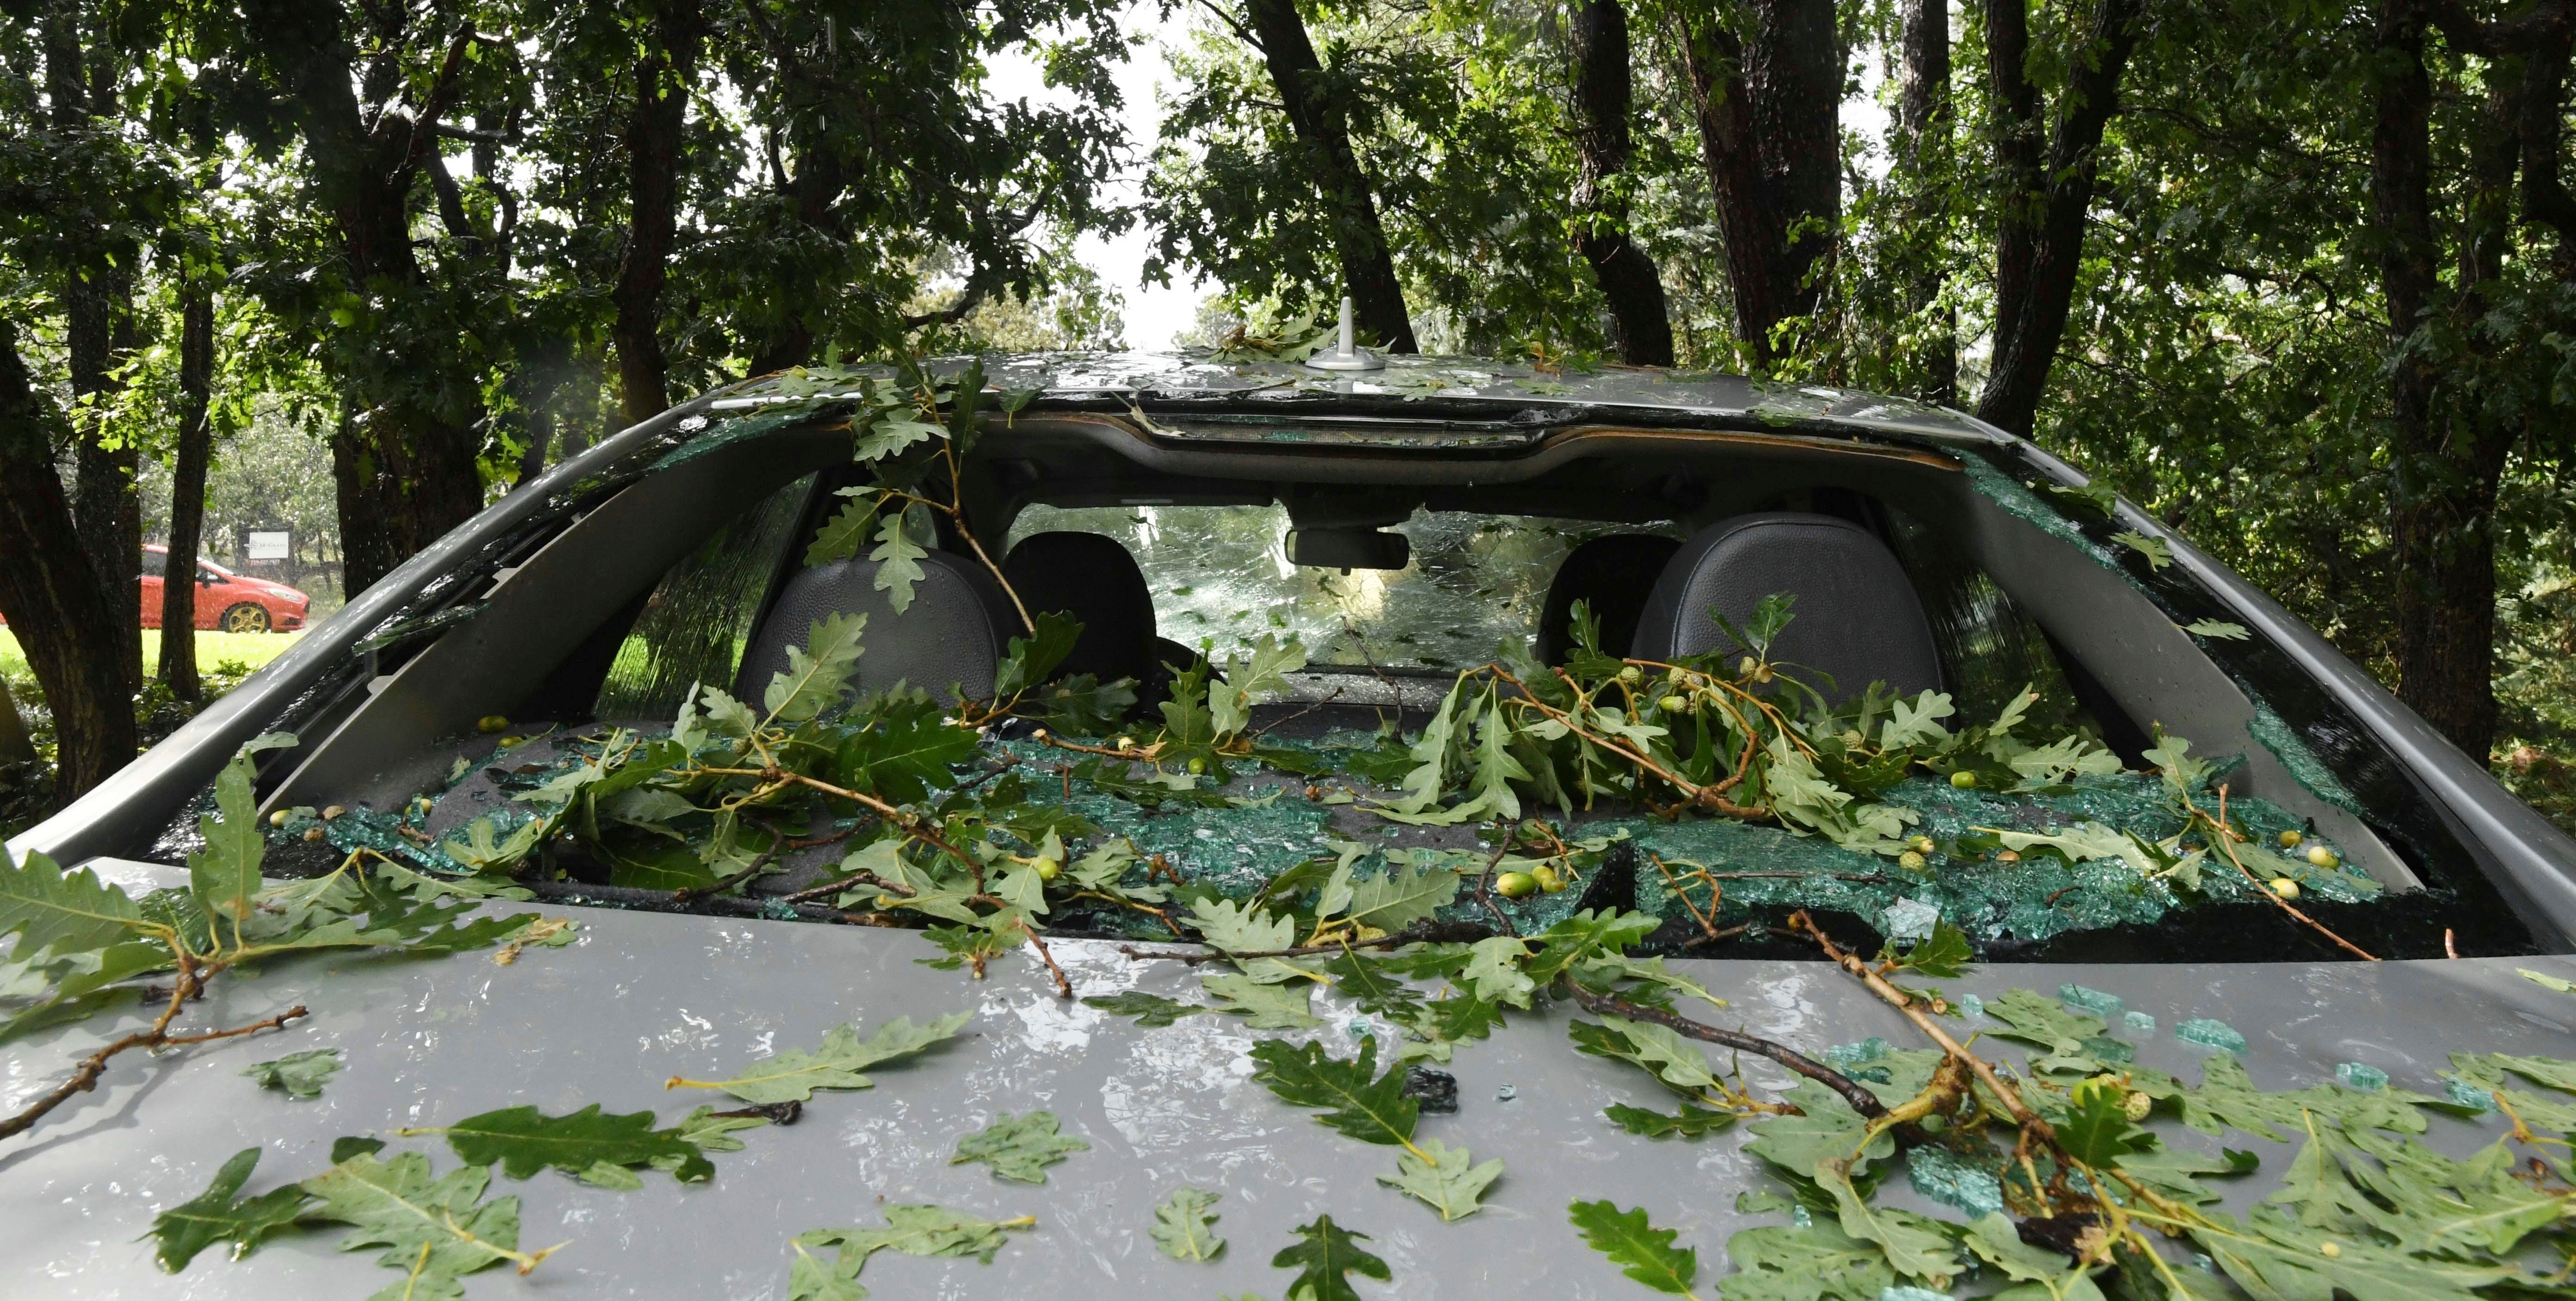 The back window of a car is broken in the Broadmoor area of Colorado Springs Colo after a hailstorm with stones the size of baseballs hit the area Monday Aug 6 2018 Jerilee Bennett/The Gazette via AP